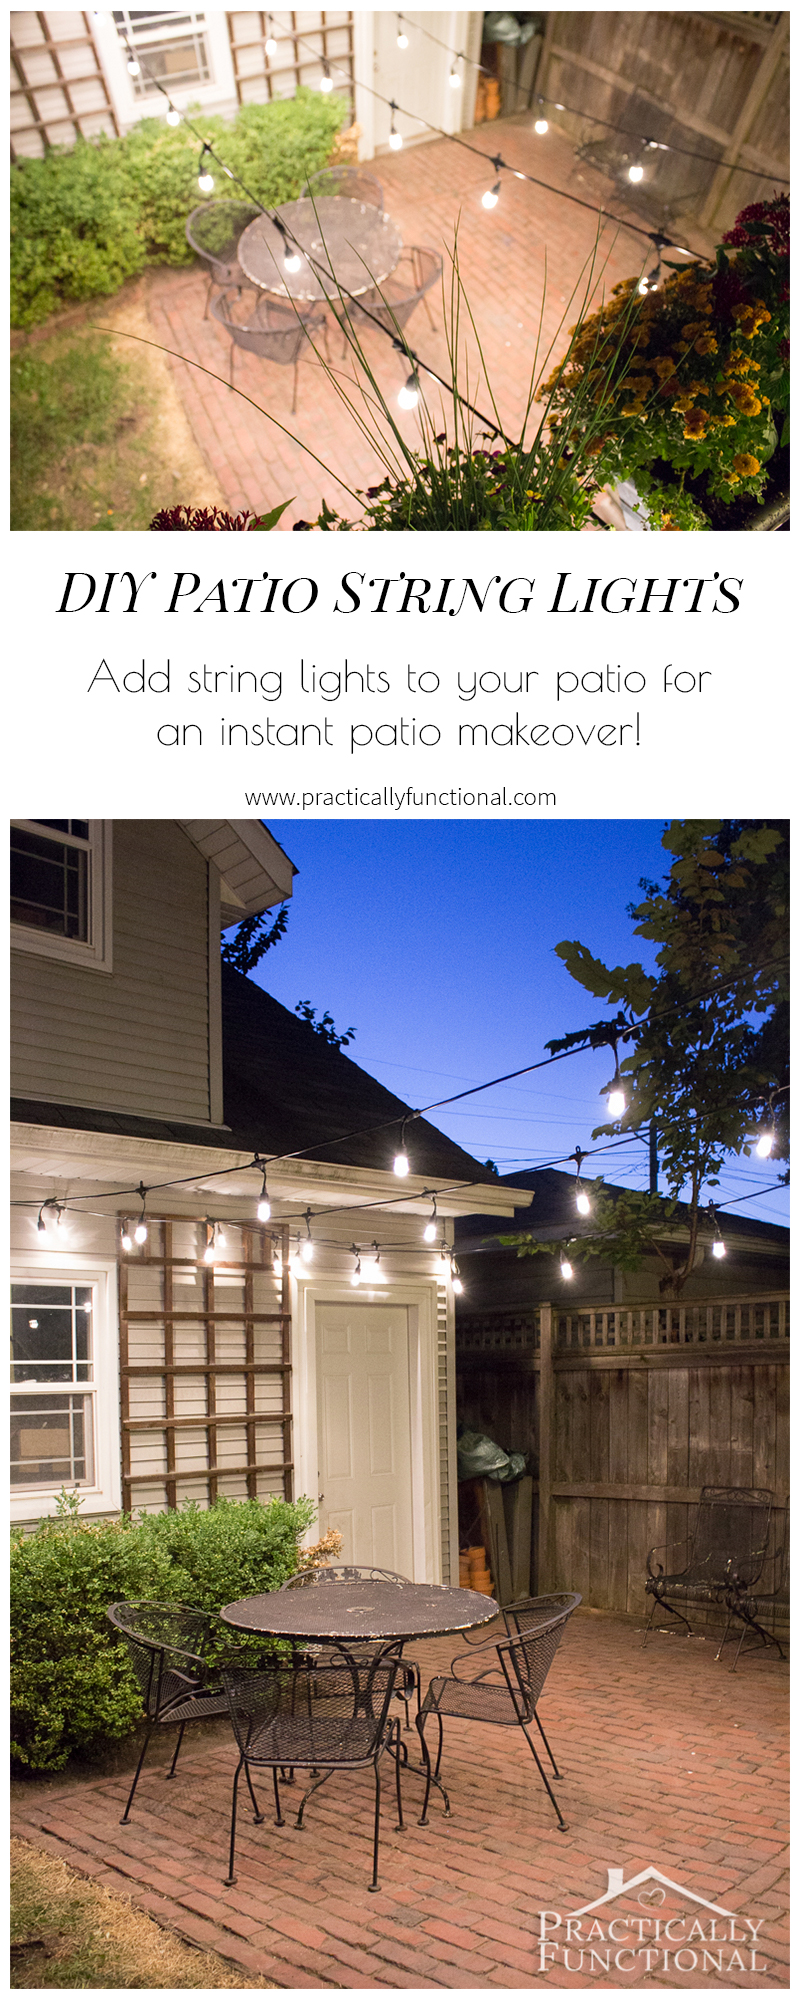 Add string lights to your patio for a quick, gorgeous, and functional patio makeover!